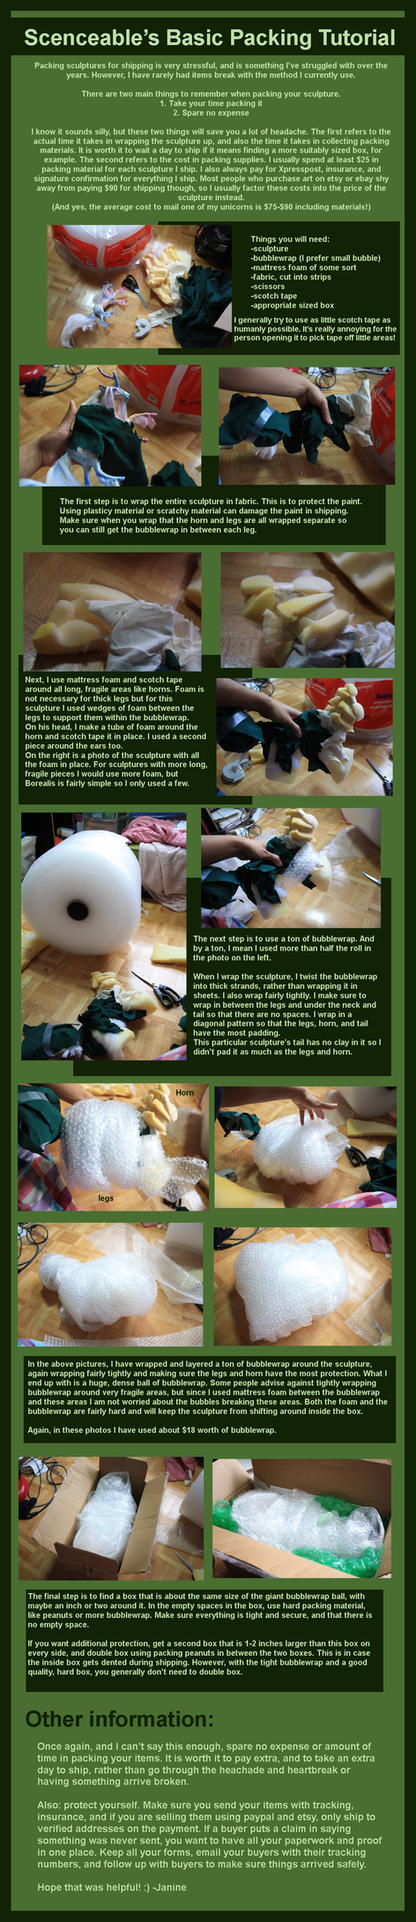 Sculpture Packing Tutorial by scenceable